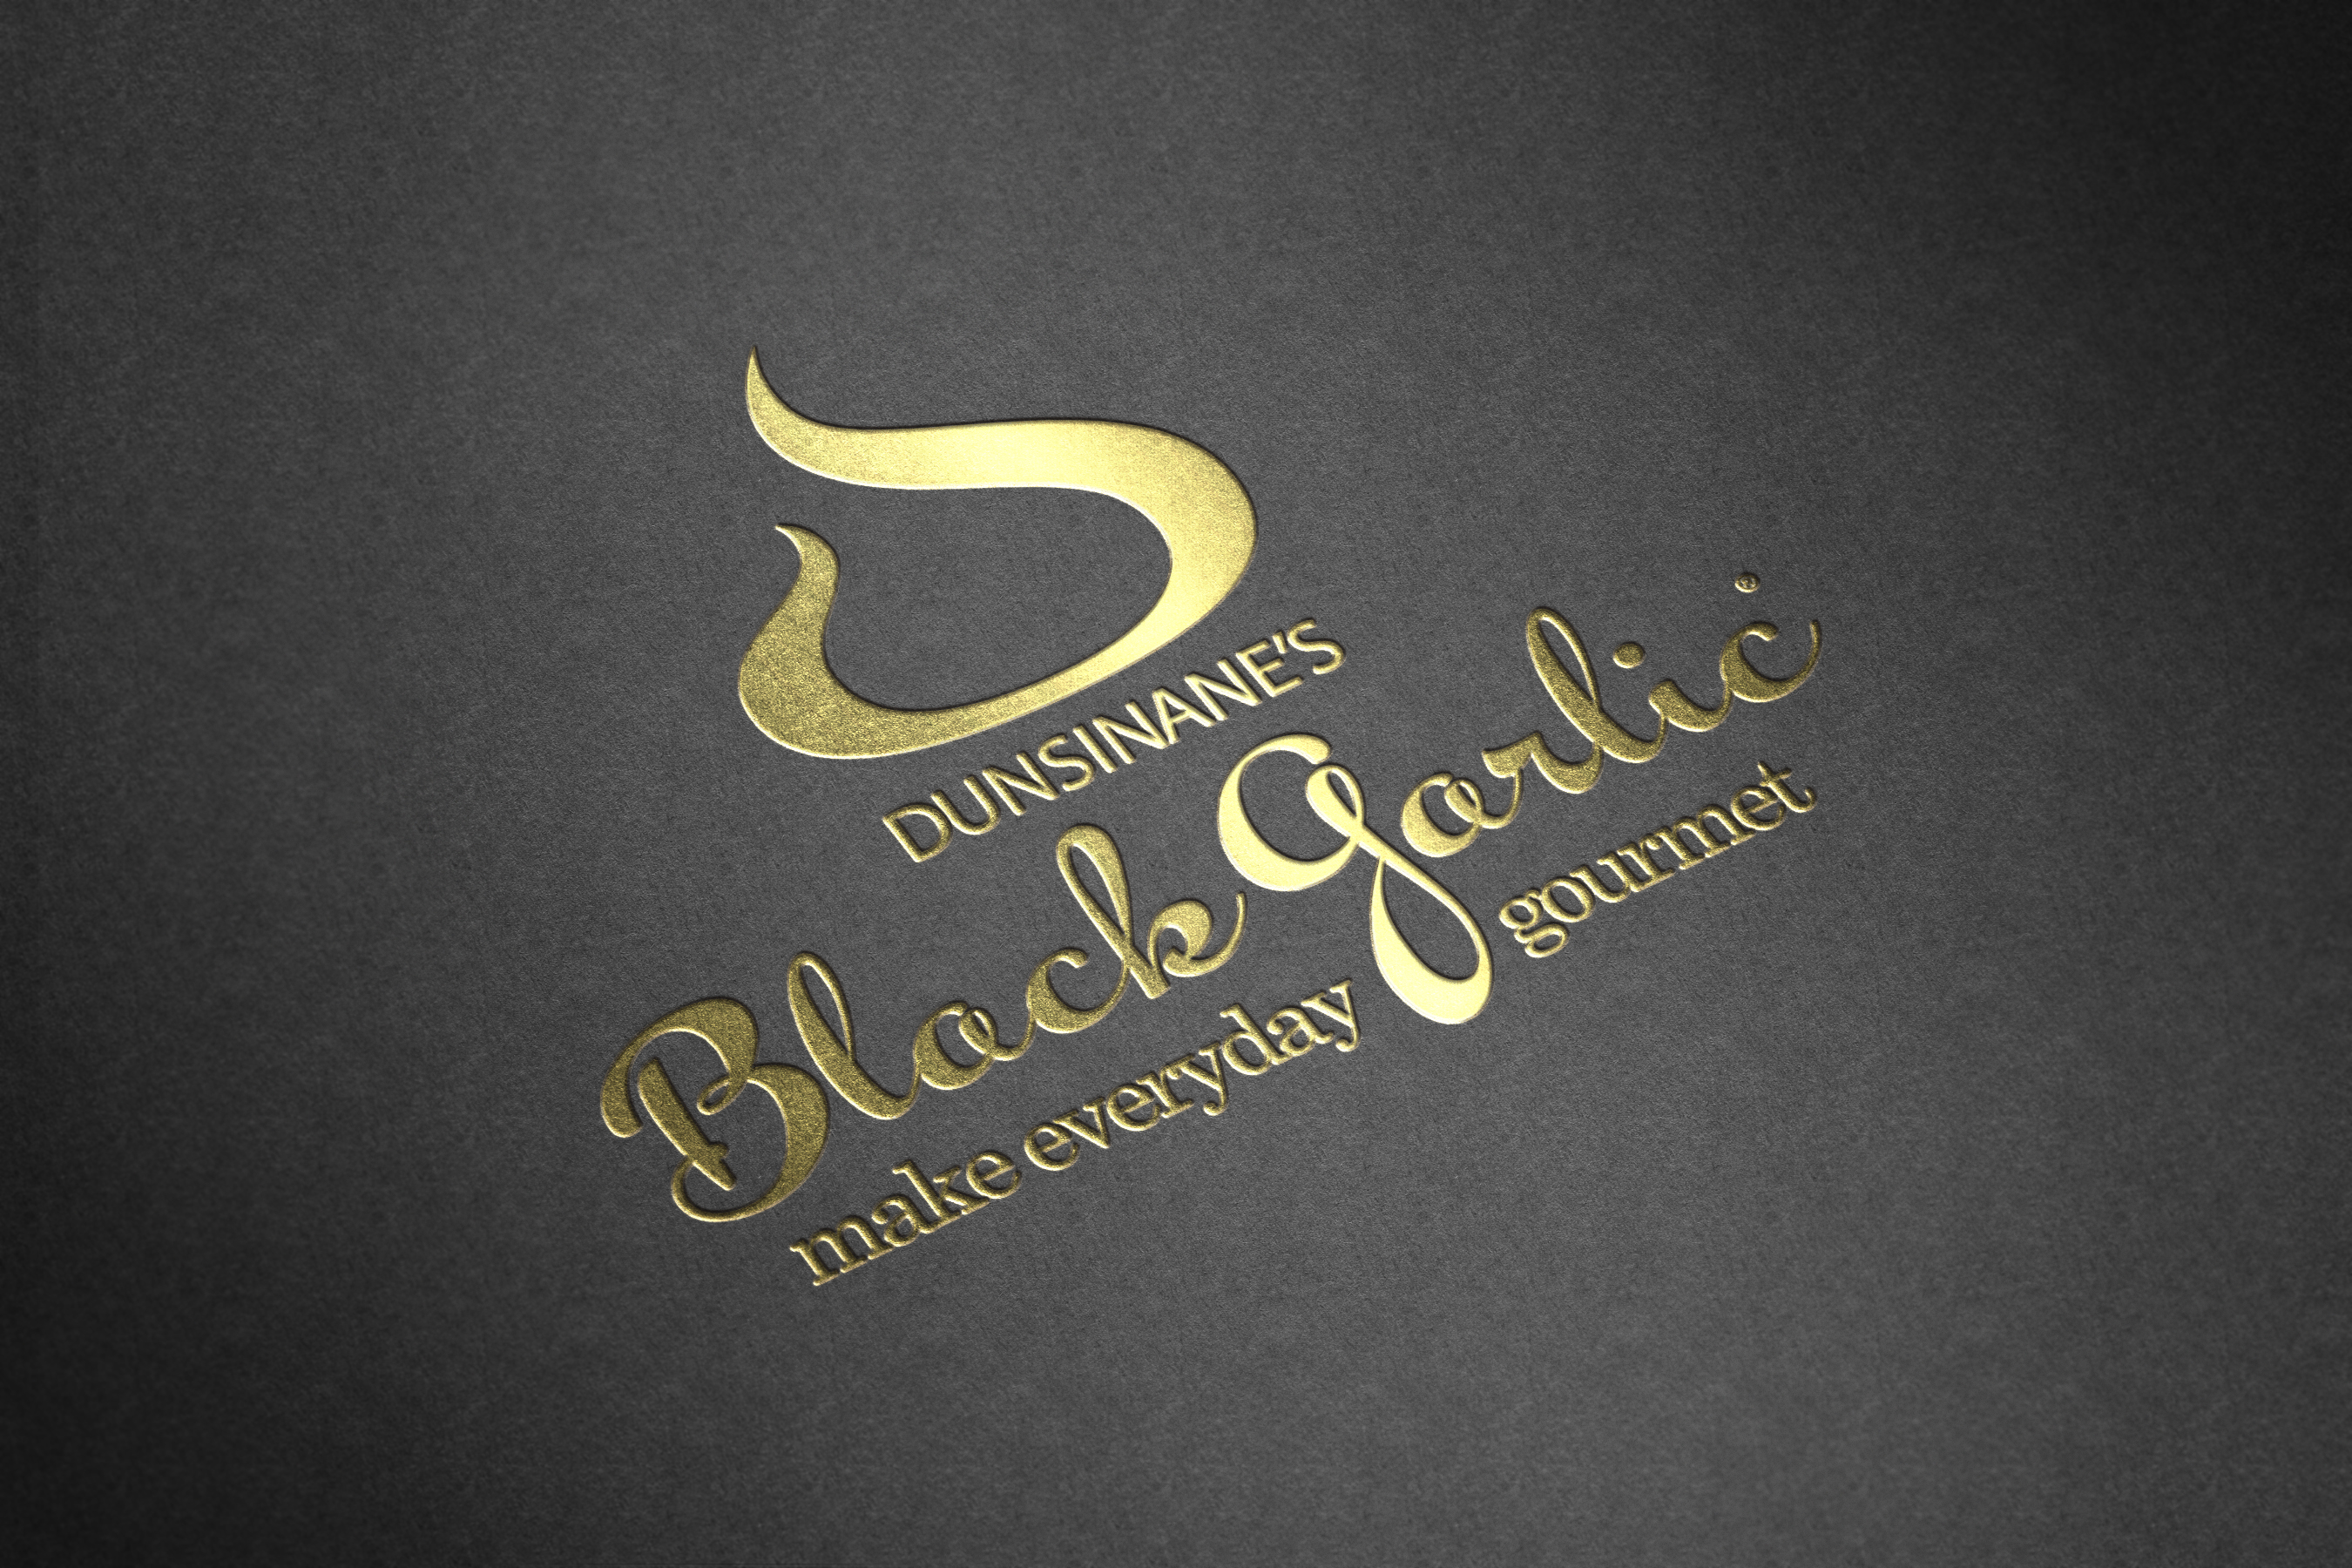 Gold Foil Dunsinanes Black Garlic Logo and branding for Chefs